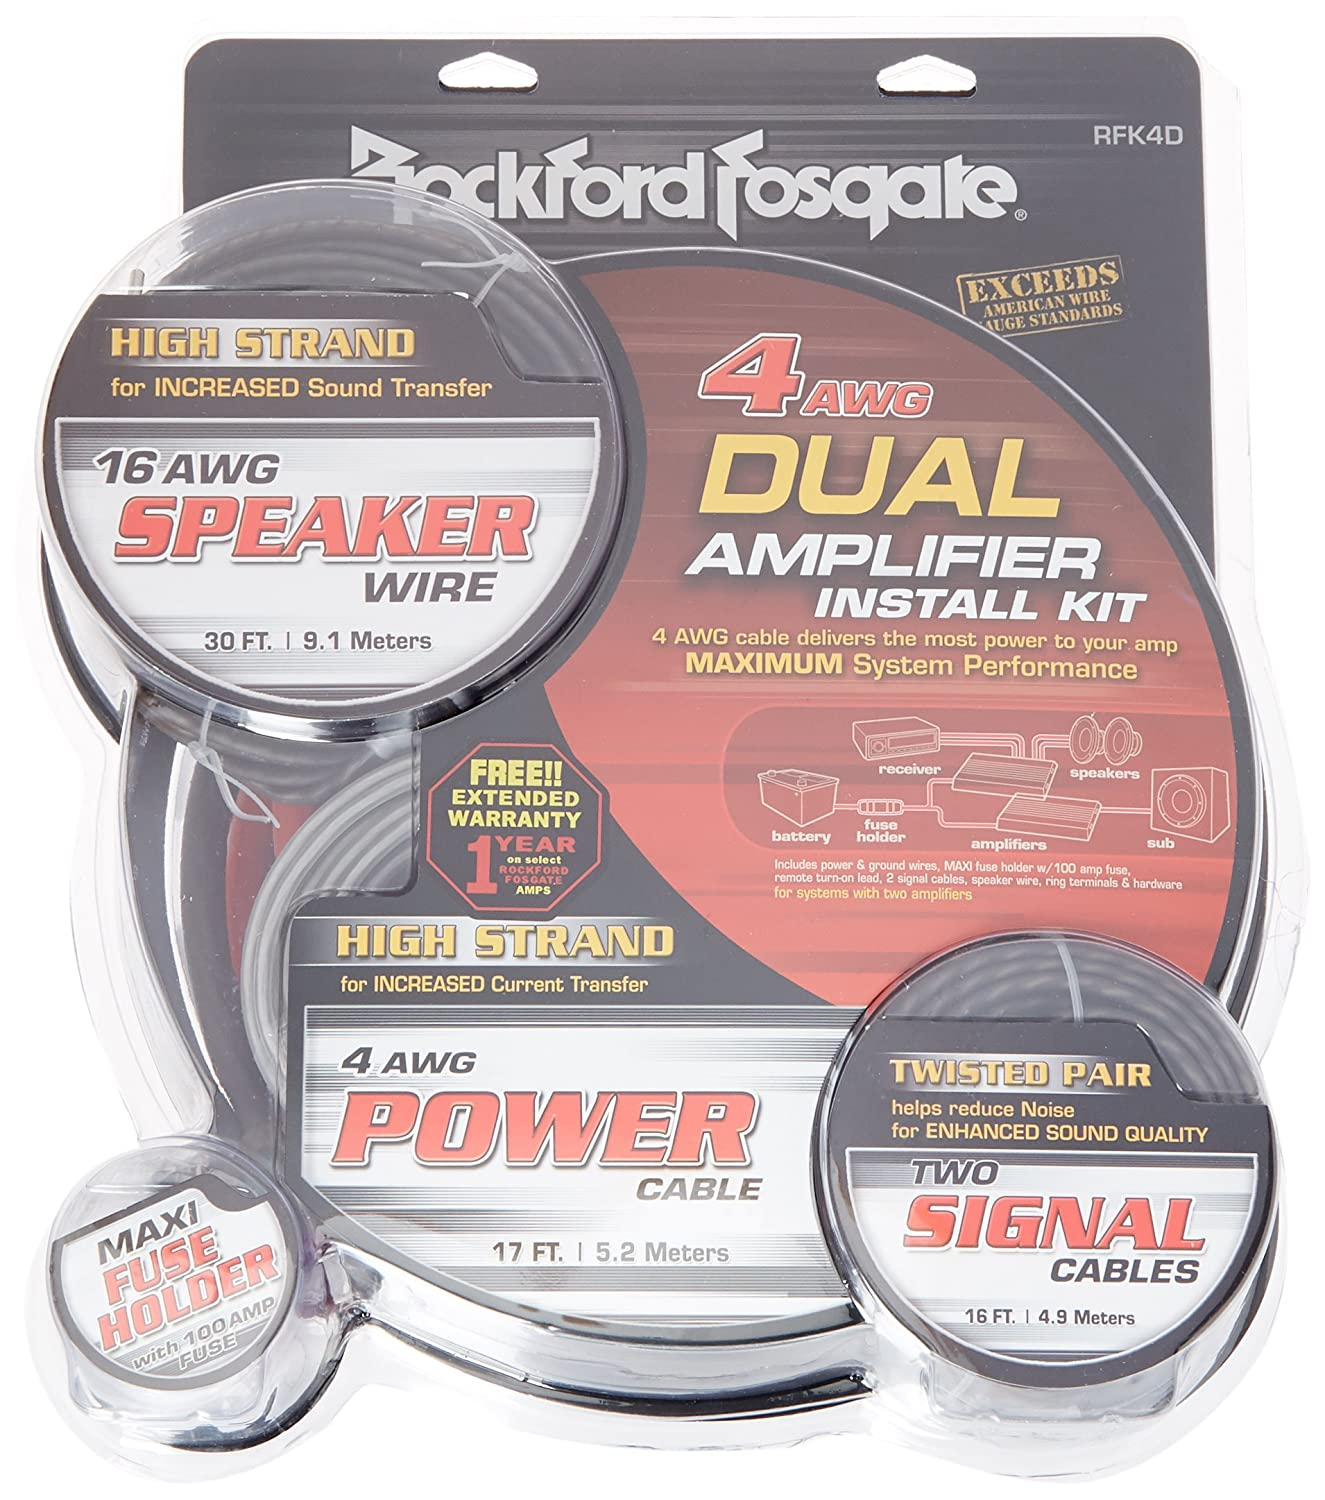 Rockford Fosgate Rfk1d Dual Amp Complete Kit Car New 4 Gauge Power Amplifier 1200 Watt Install Wiring Electronics